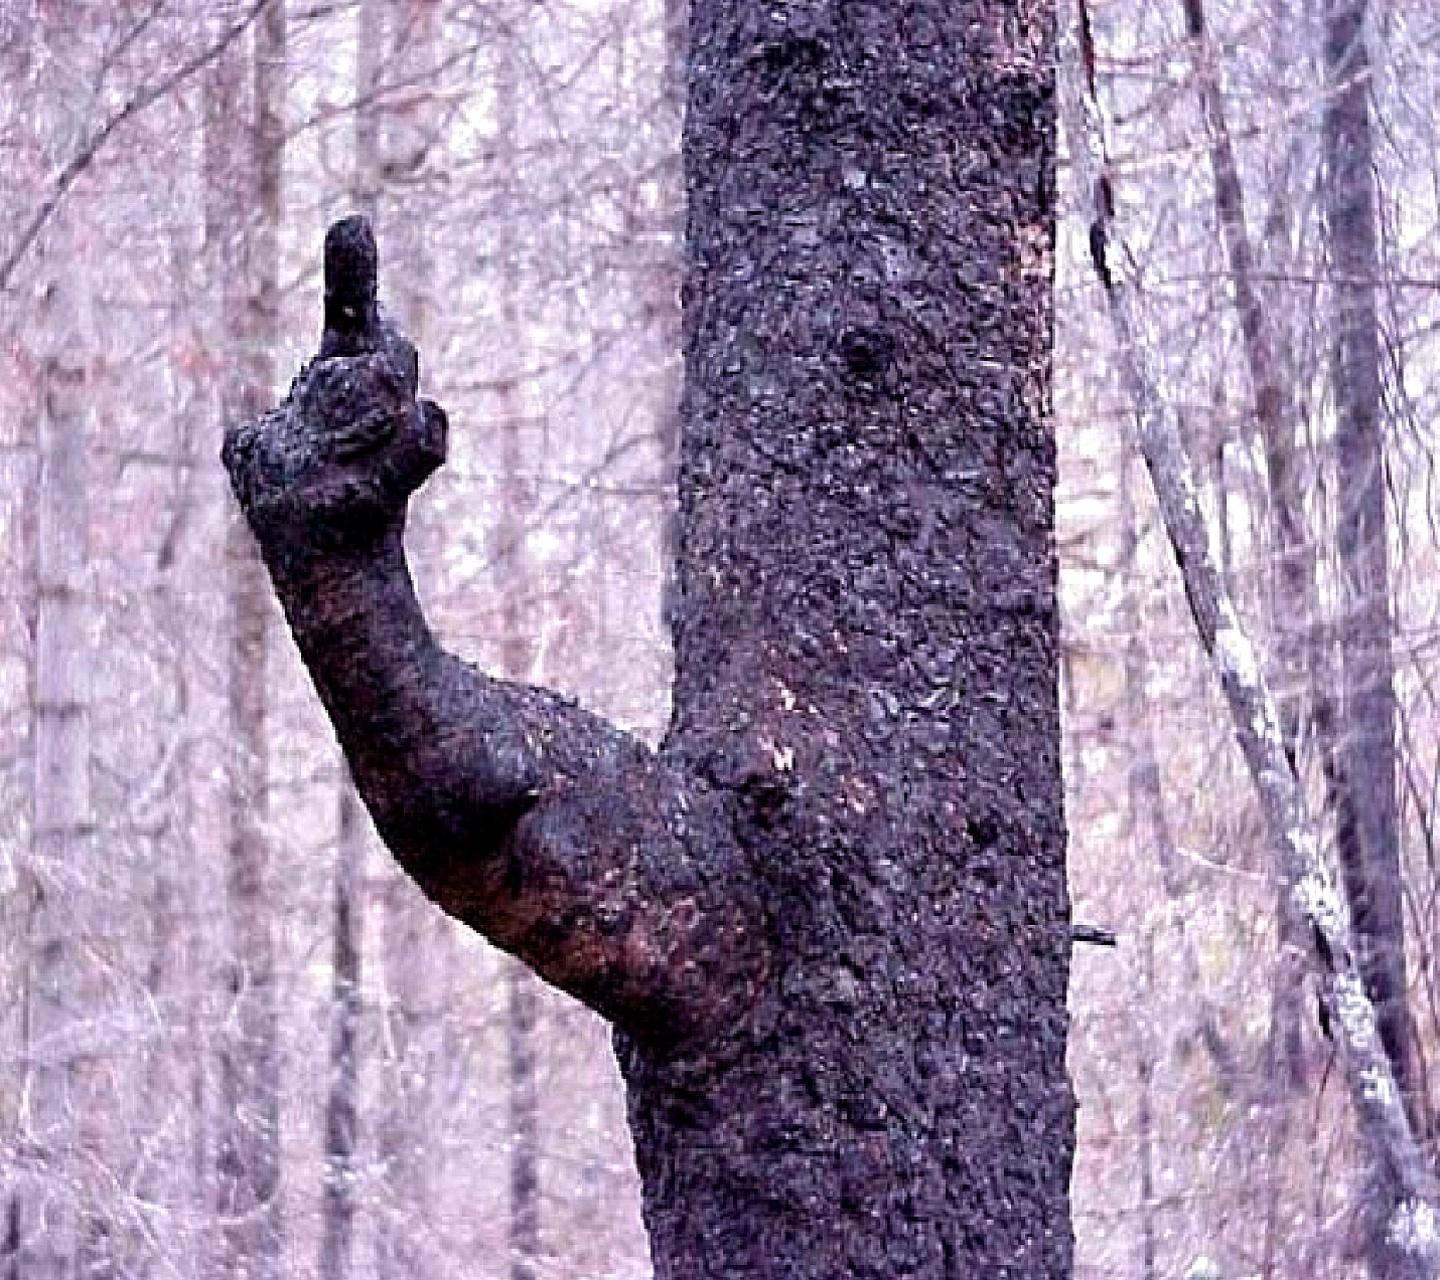 Fuck you too, tree!